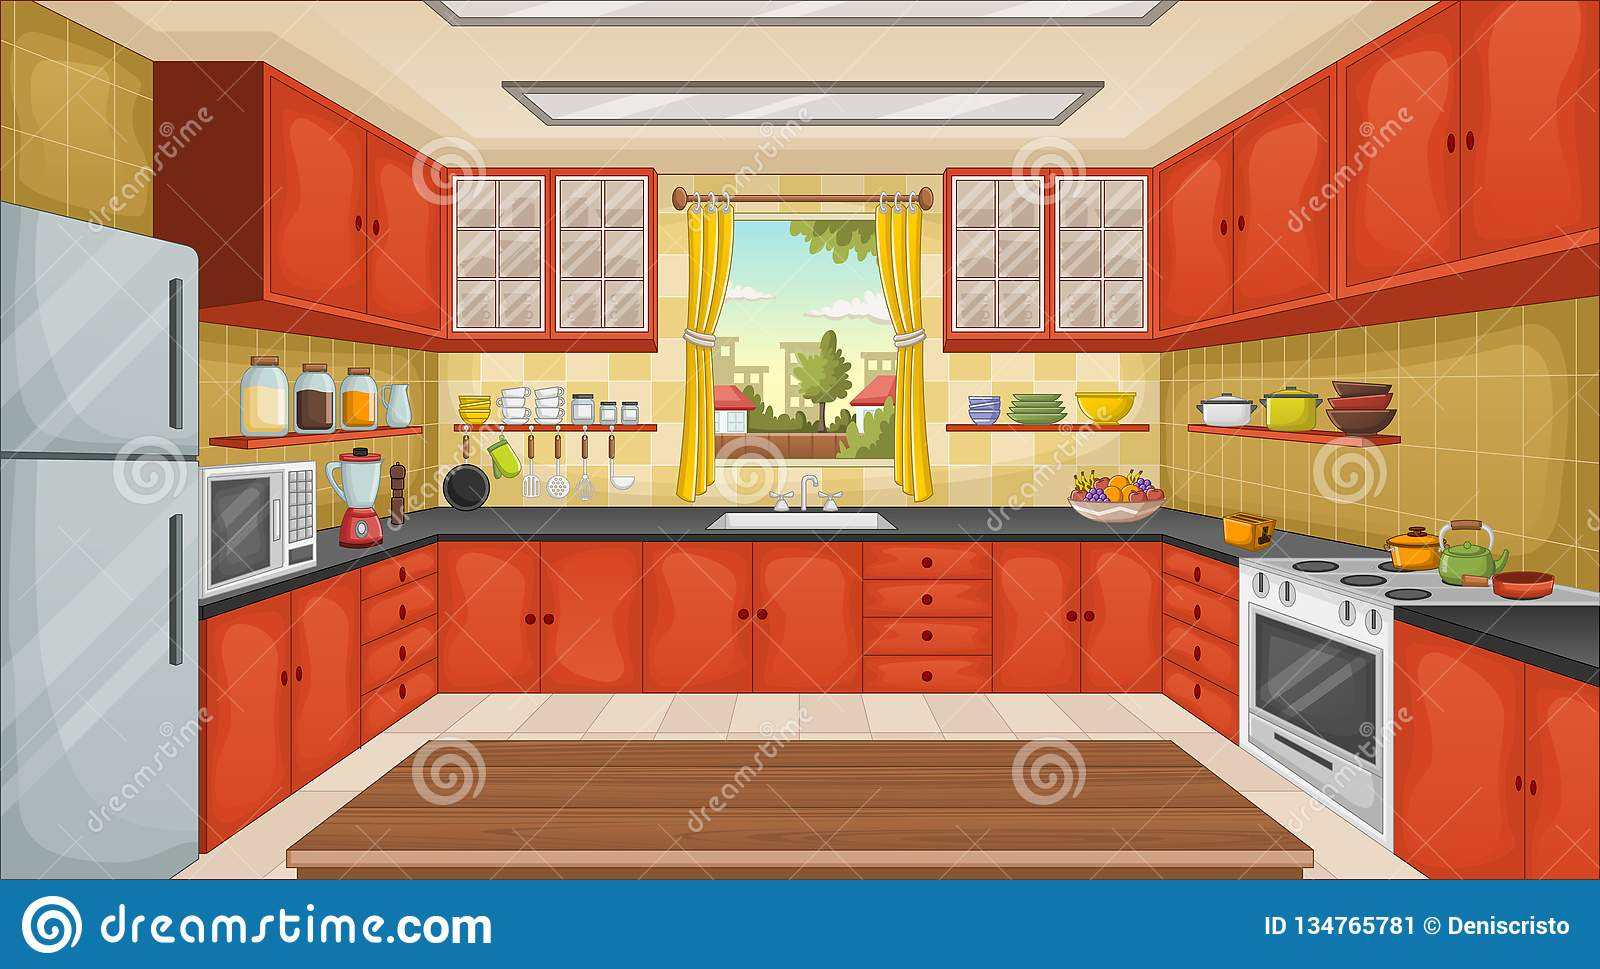 Colorful Kitchen With Utensils. House In The Suburb. Stock ...